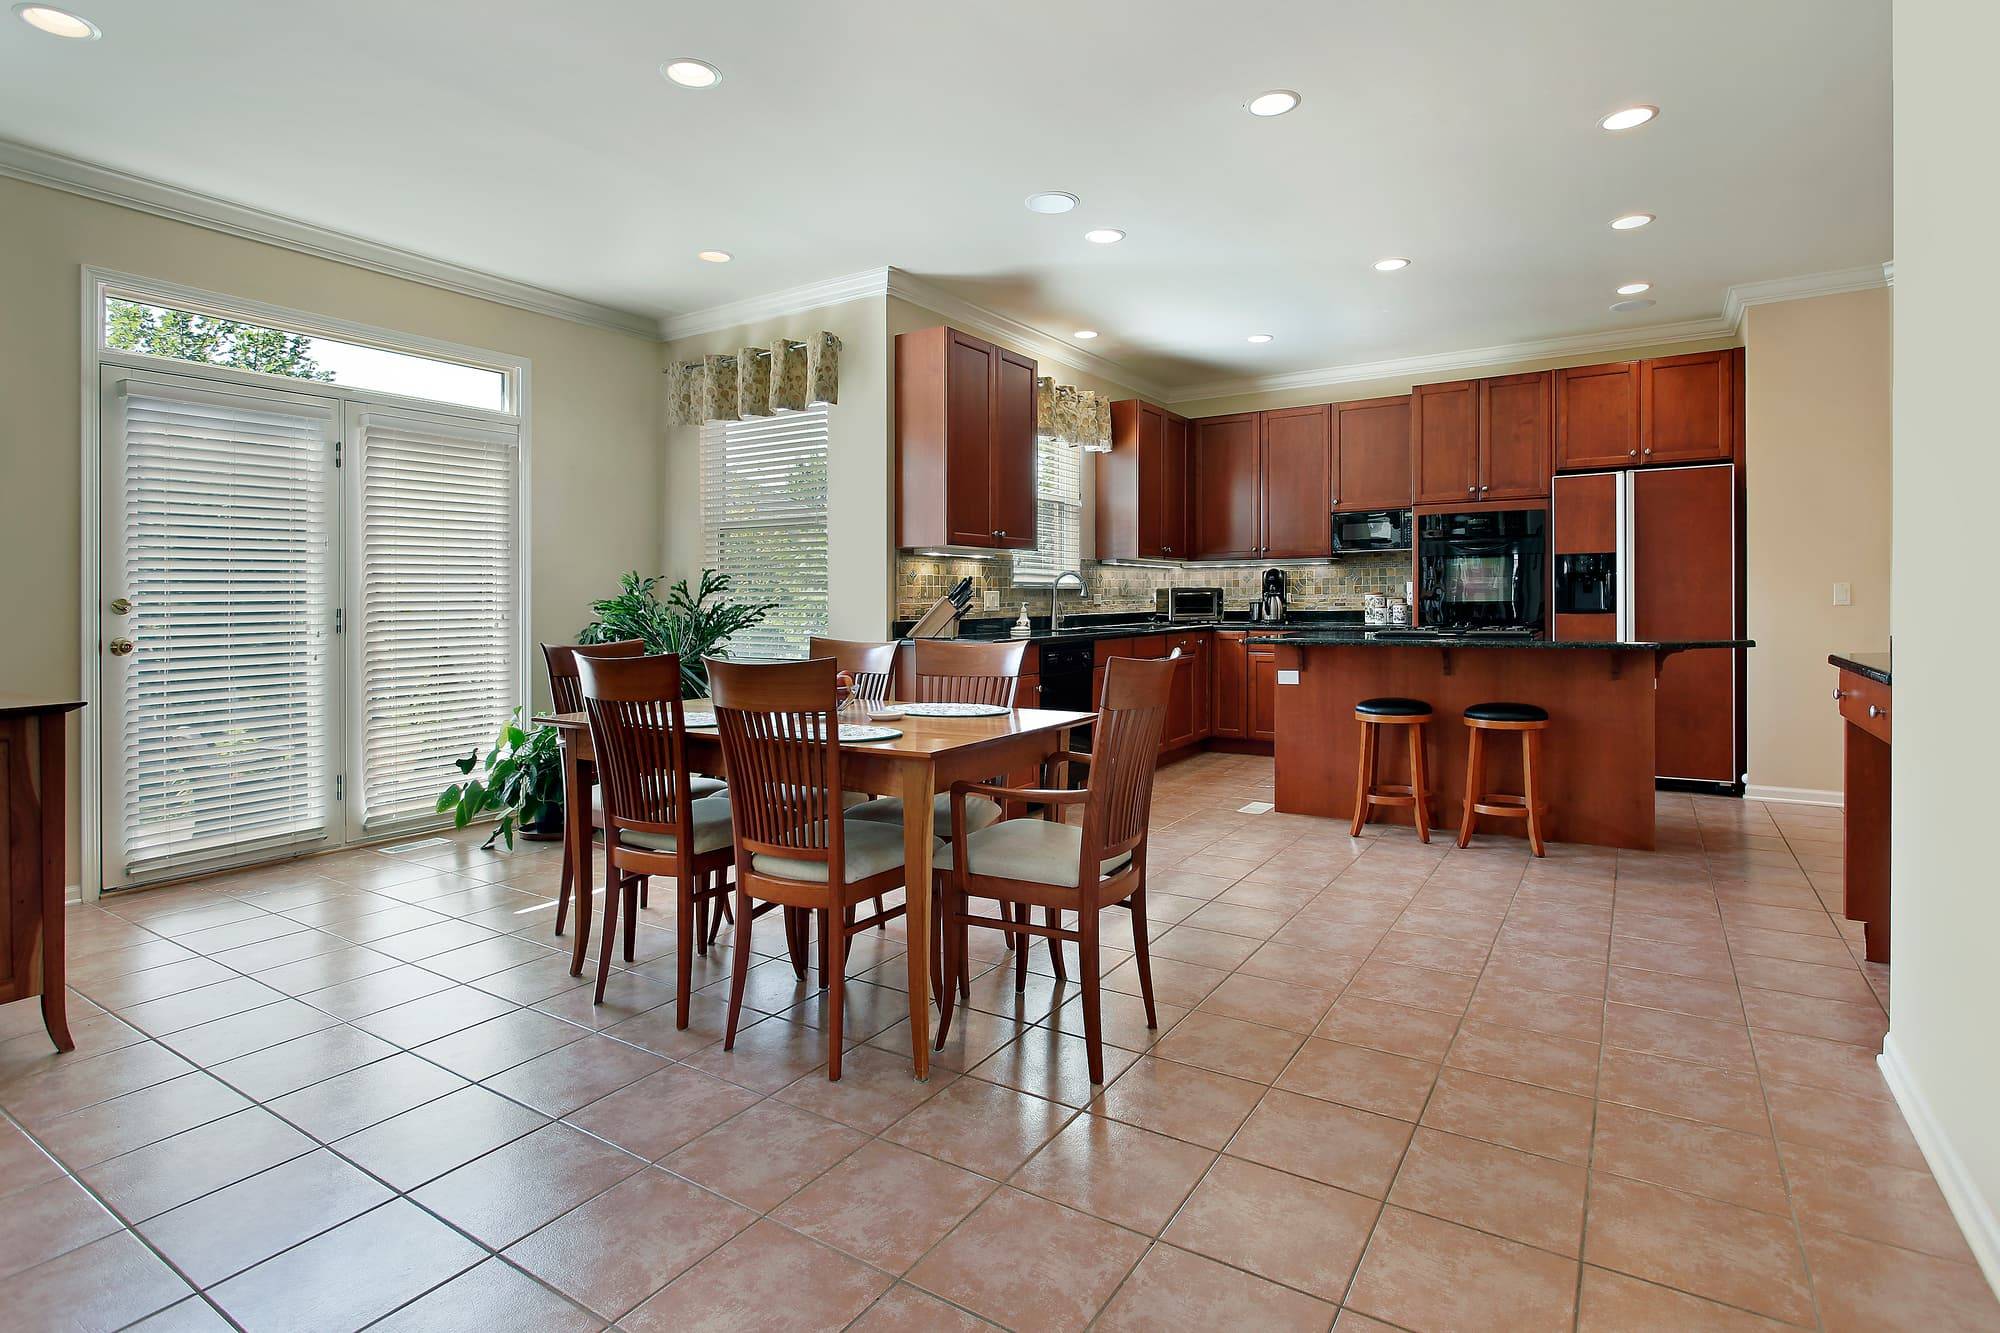 beautiful clean tile floor in the kitchen